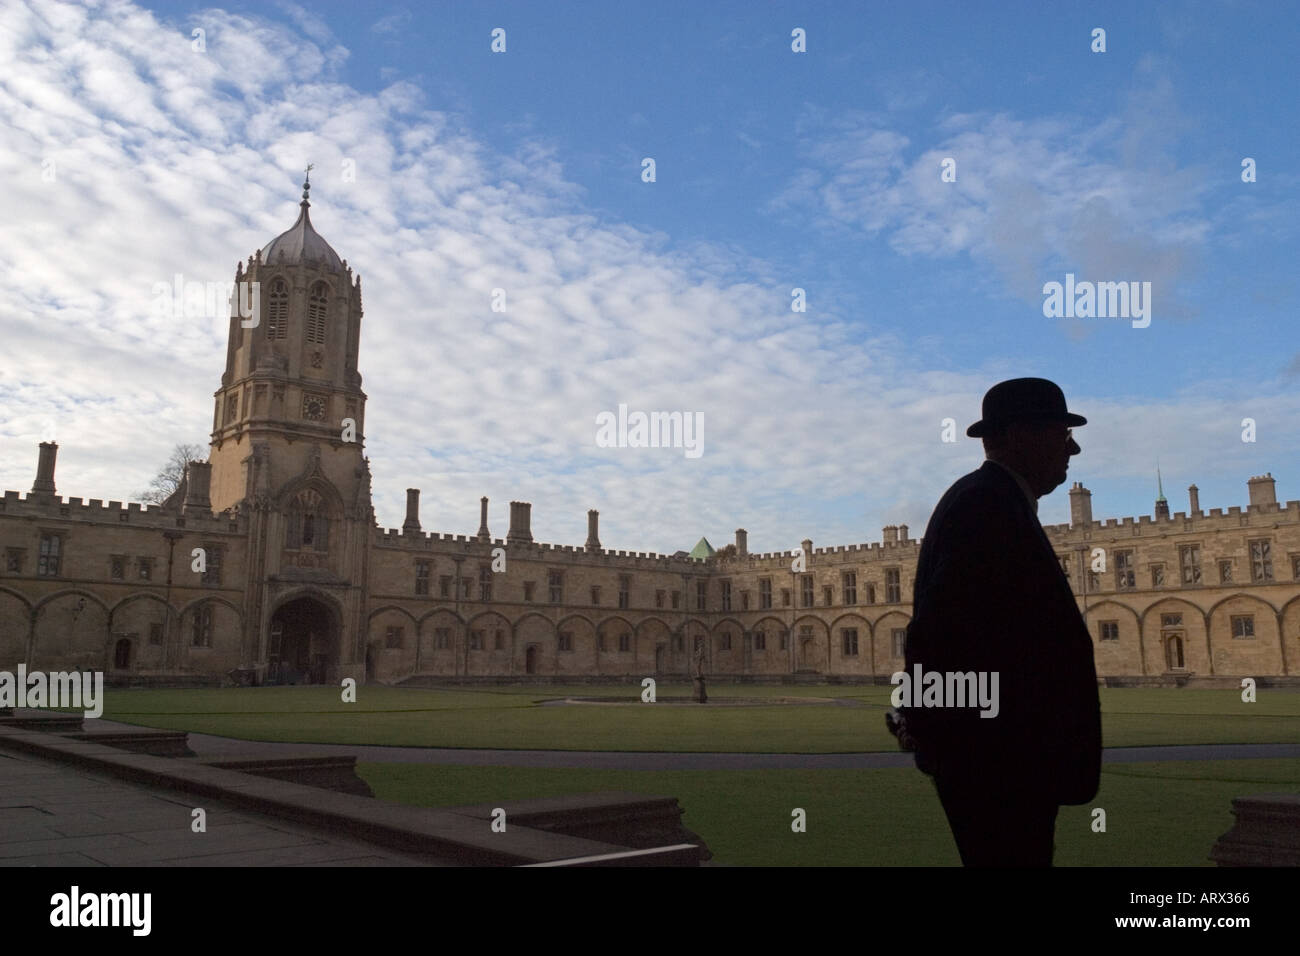 Courtyard of Christ Church College at Oxford University - Stock Image